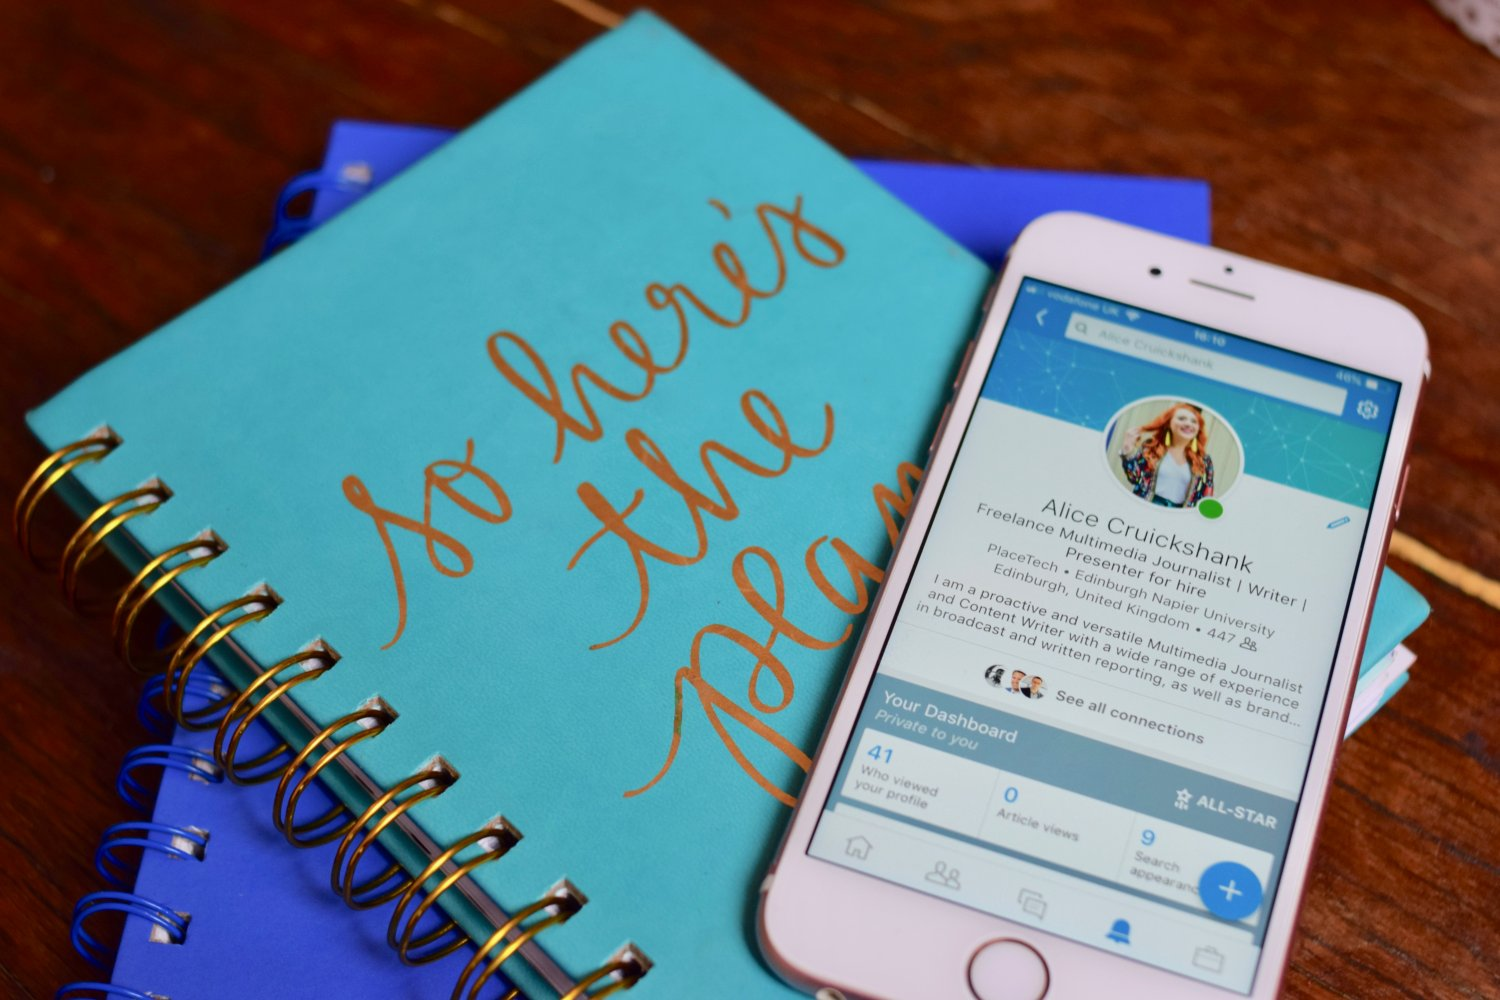 Twenty-Something City LinkedIn tips with diary and iPhone